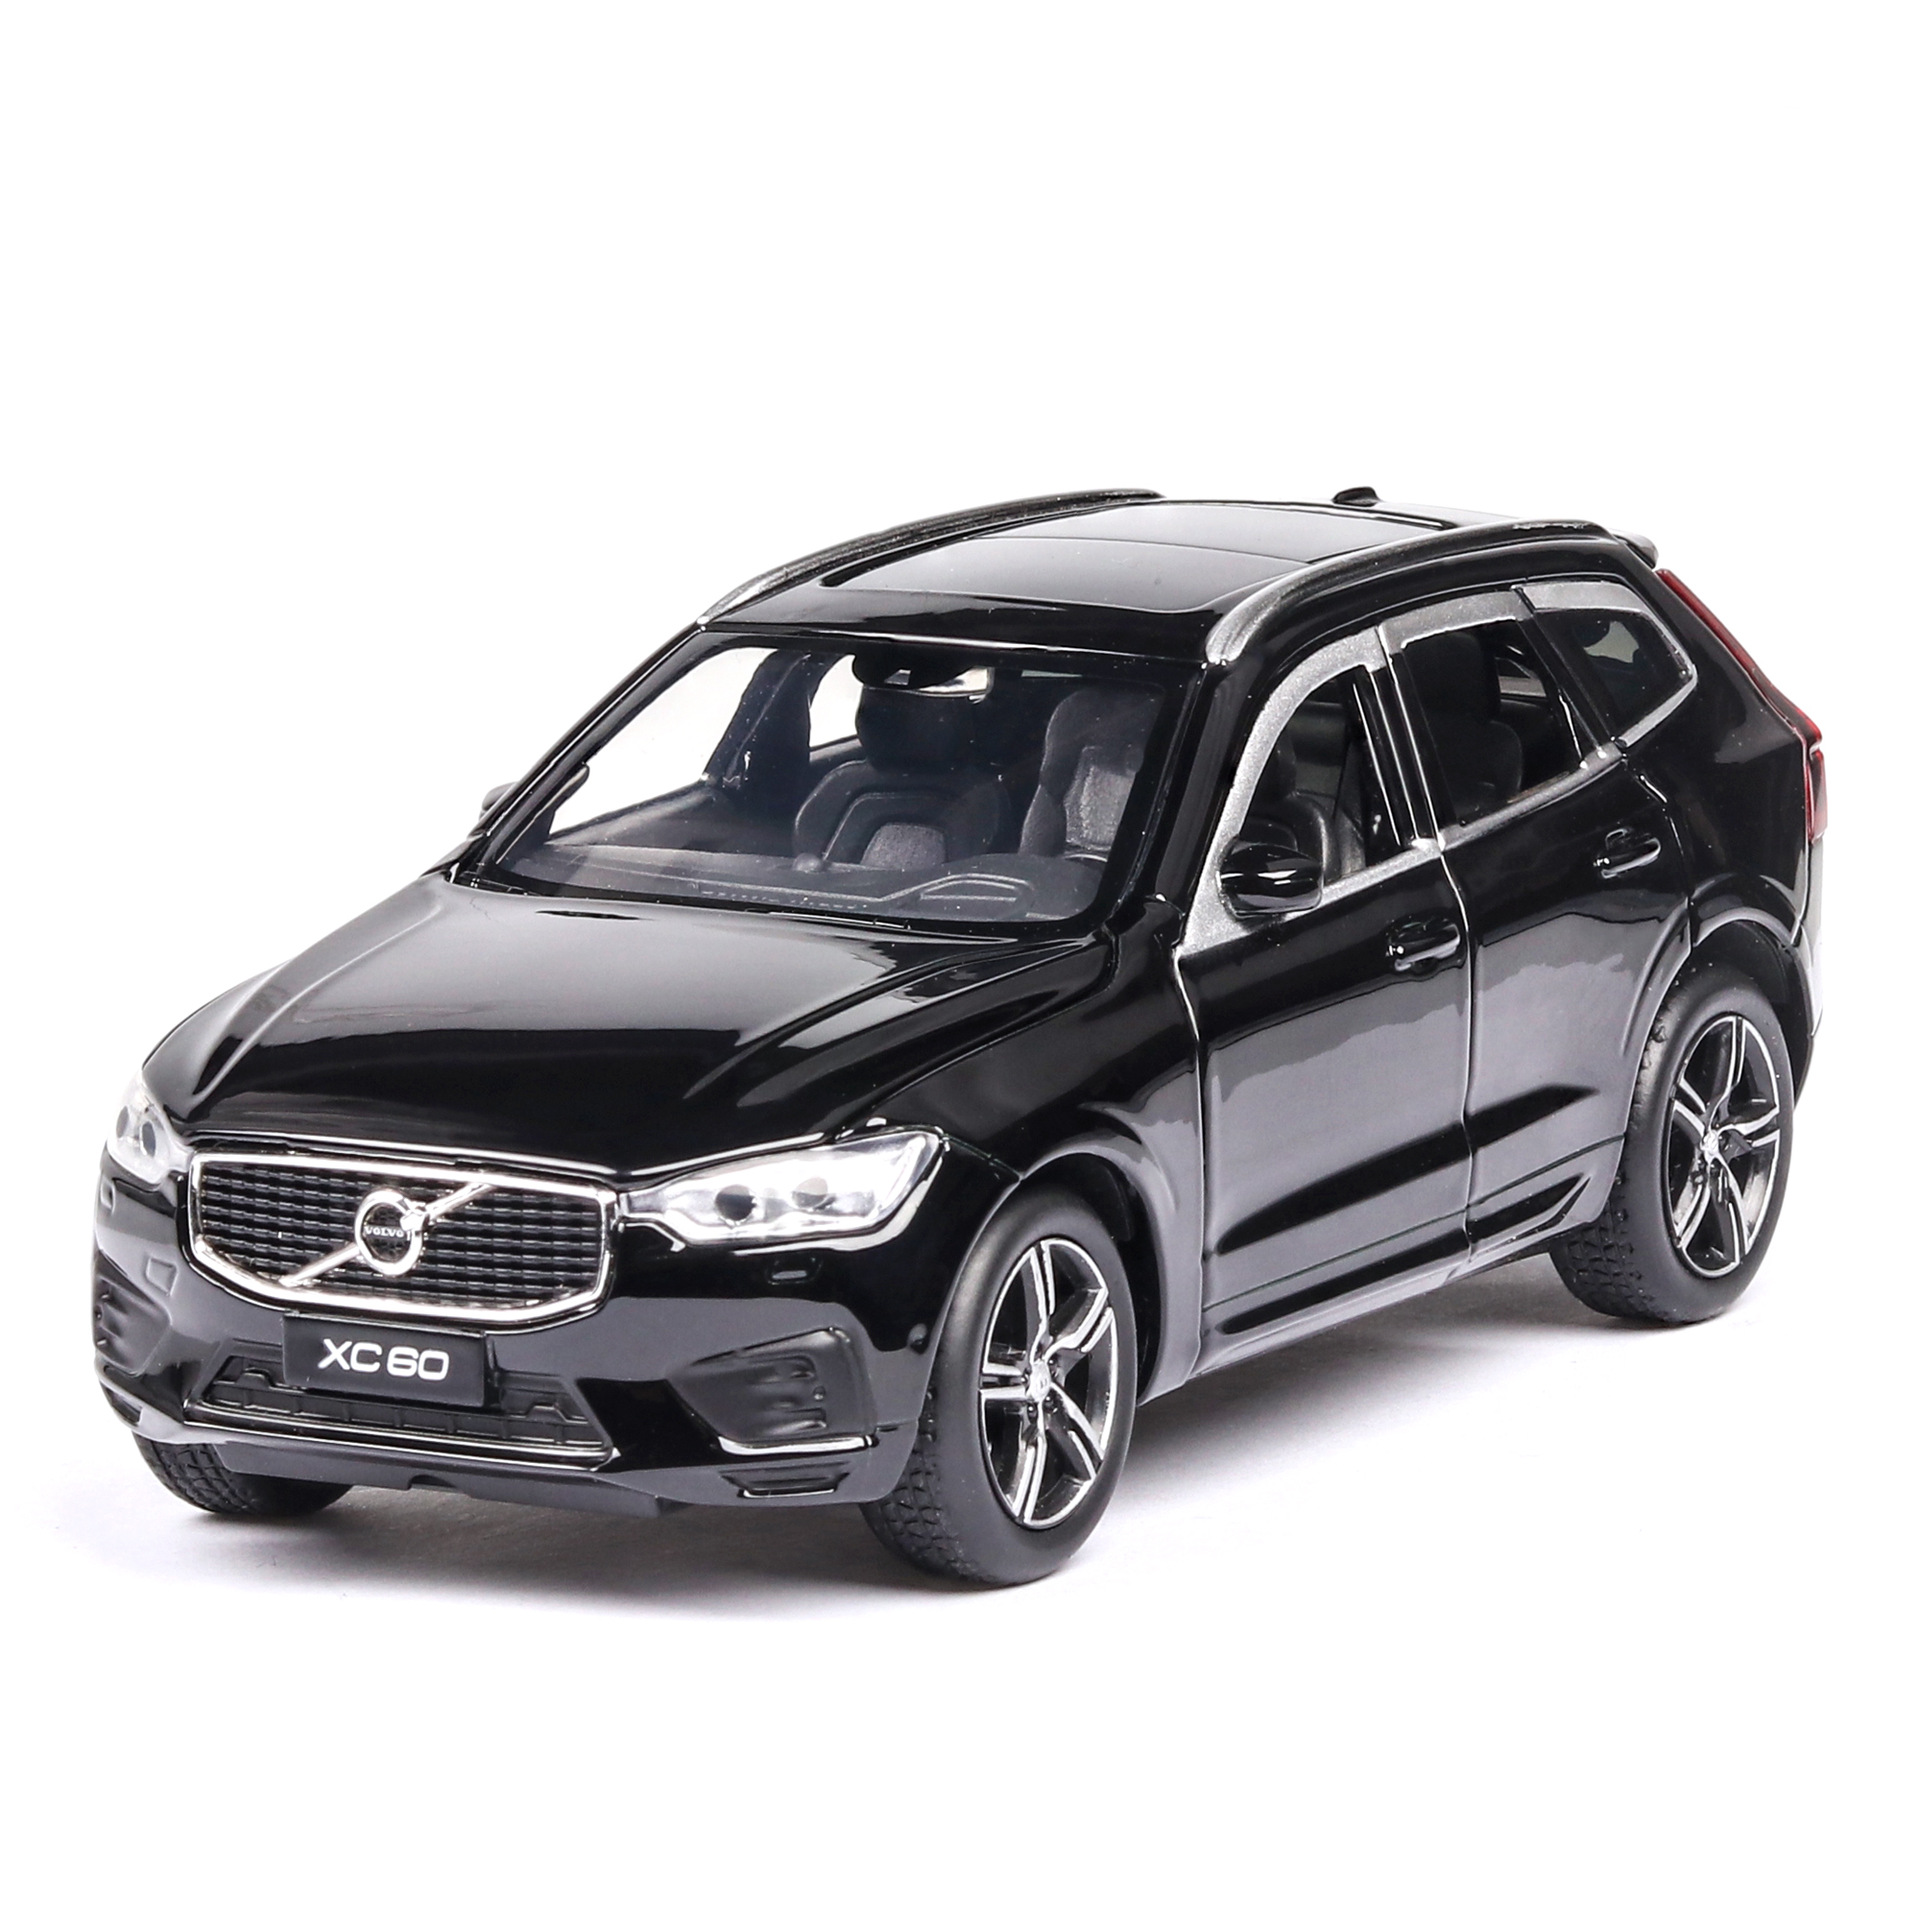 XC60 2019 Off-road SUV 1//32 Model Car Diecast Toy Kids Collection Gift Grey